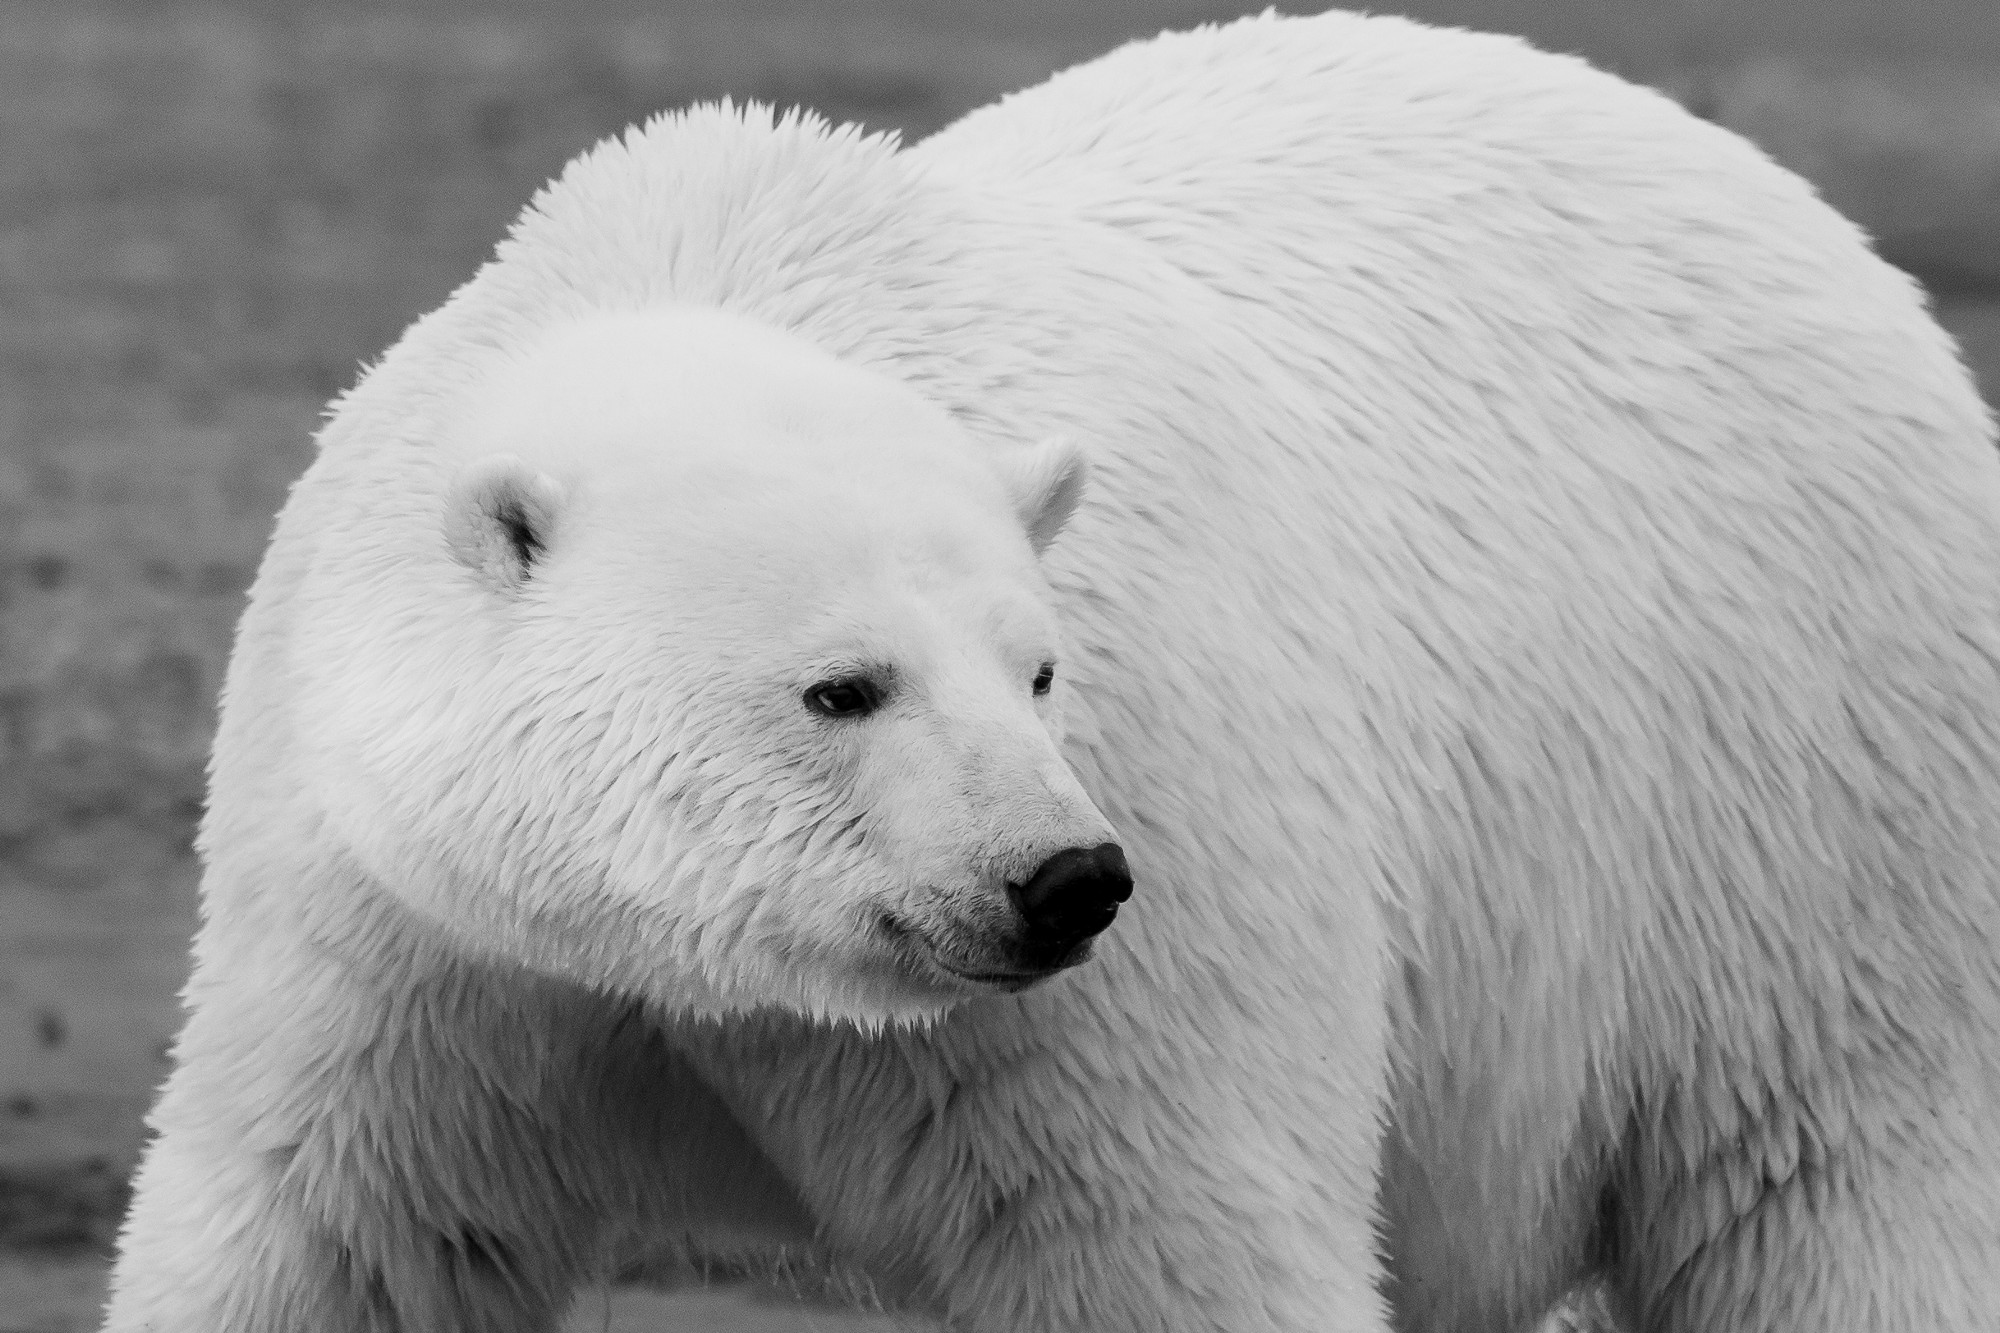 Close up black and white image of a polar bear with head turned toward the side.